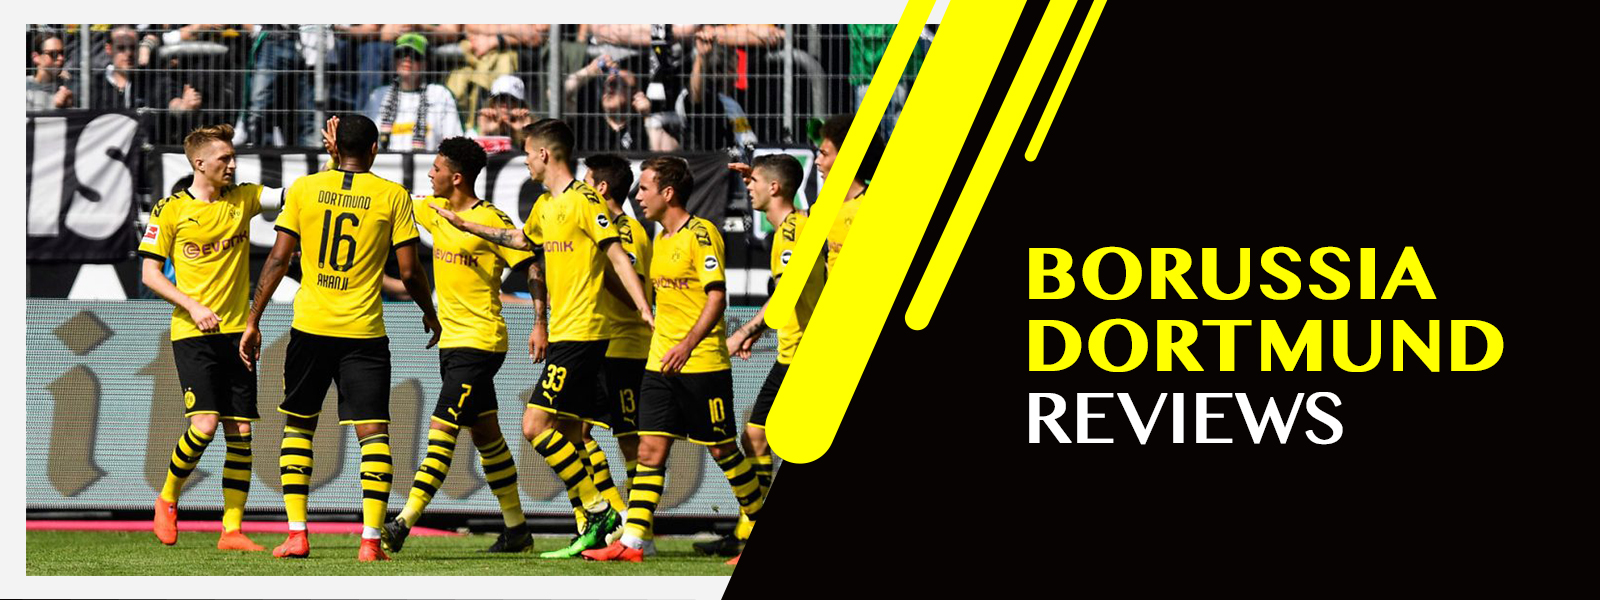 SoccerTipsters Blog | Borussia Dortmund Football Club Reviews